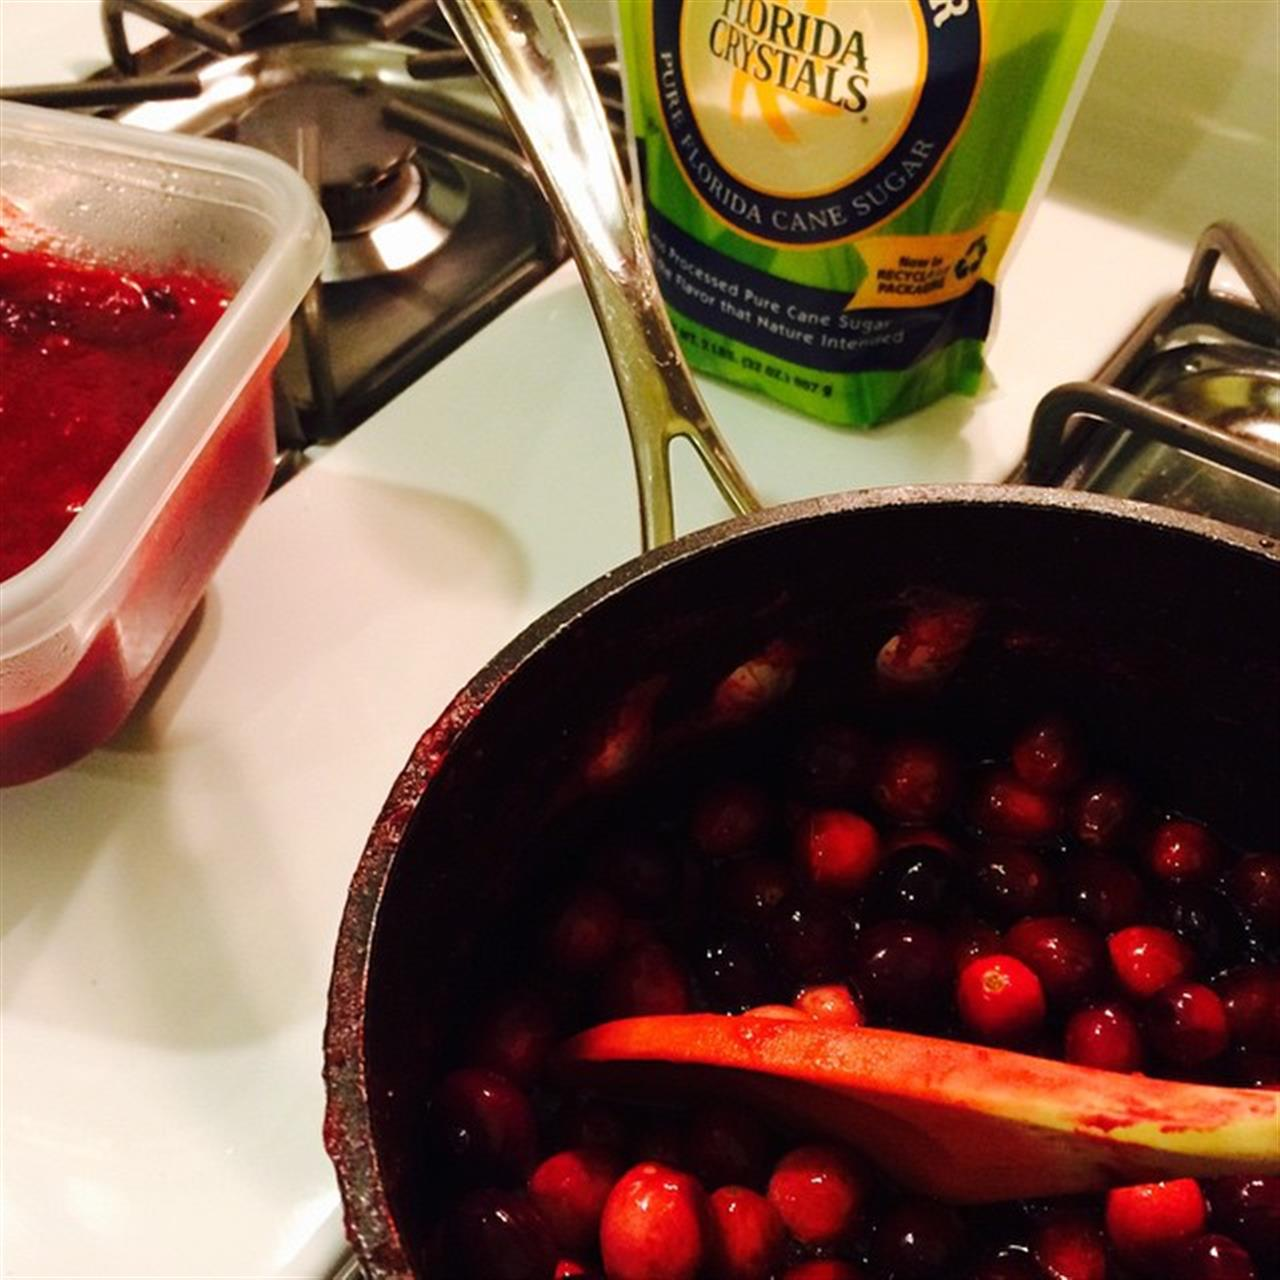 My job is the cranberry sauce and a salad.  Work in progress :-) #thanksgiving #cranberries #ctfood #LeadingRELocal